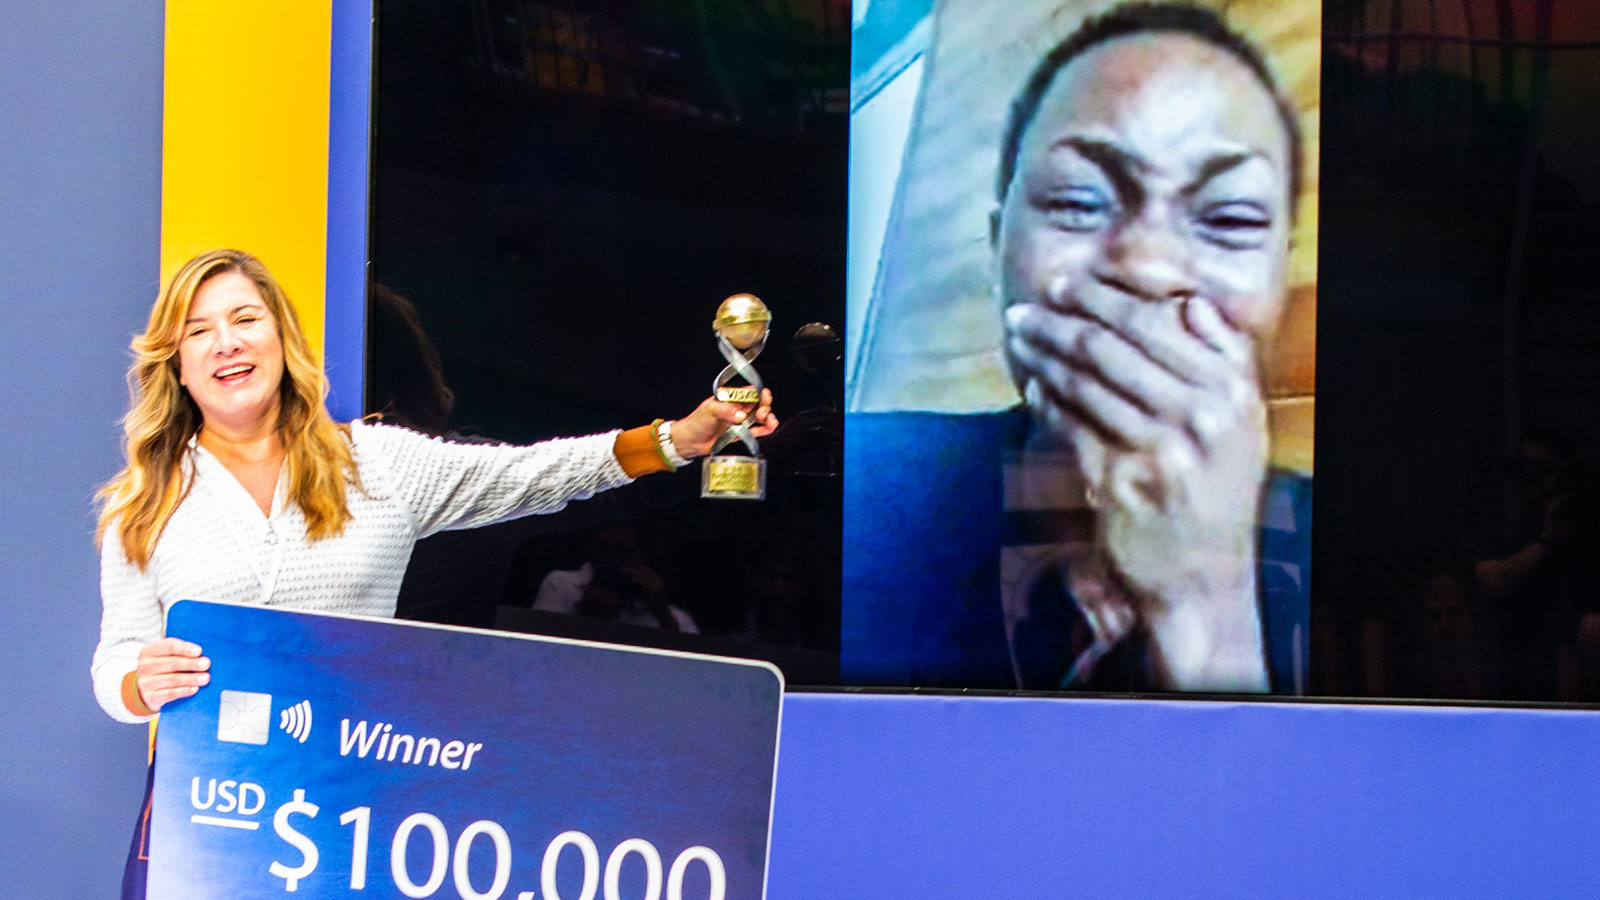 Woman presenting Monique Ntumngia, winner of the Social Impact challenge, a cutout of a Visa card worth $100k and a trophy.